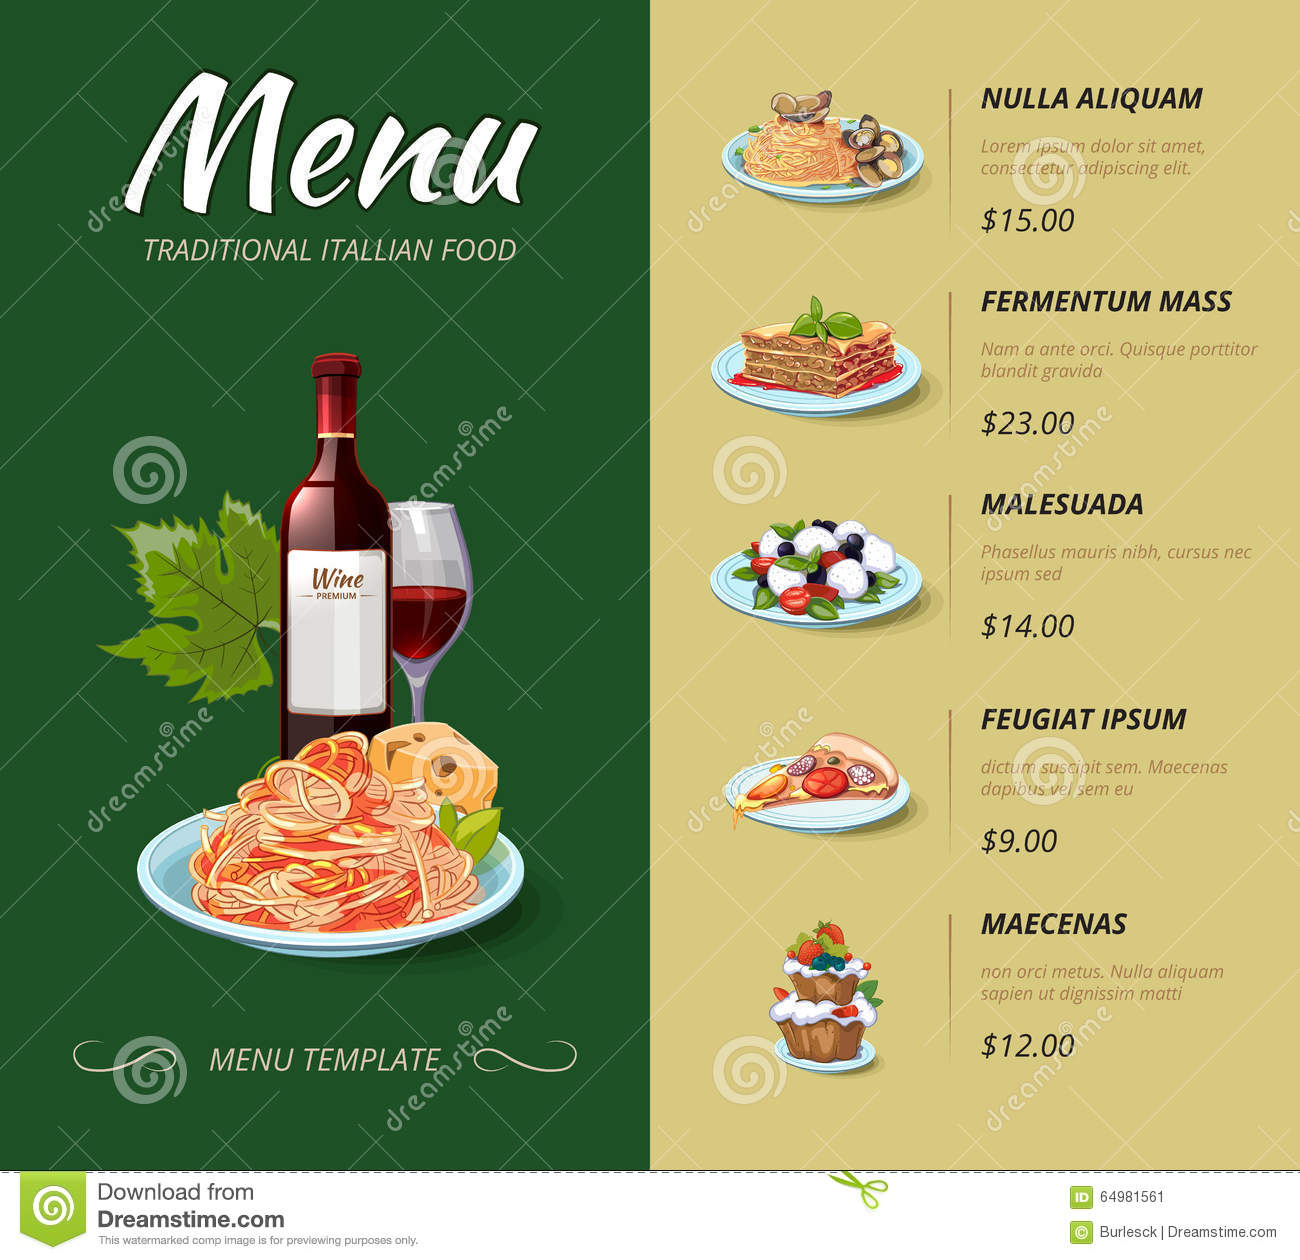 Italian food menu items images for Design cuisine